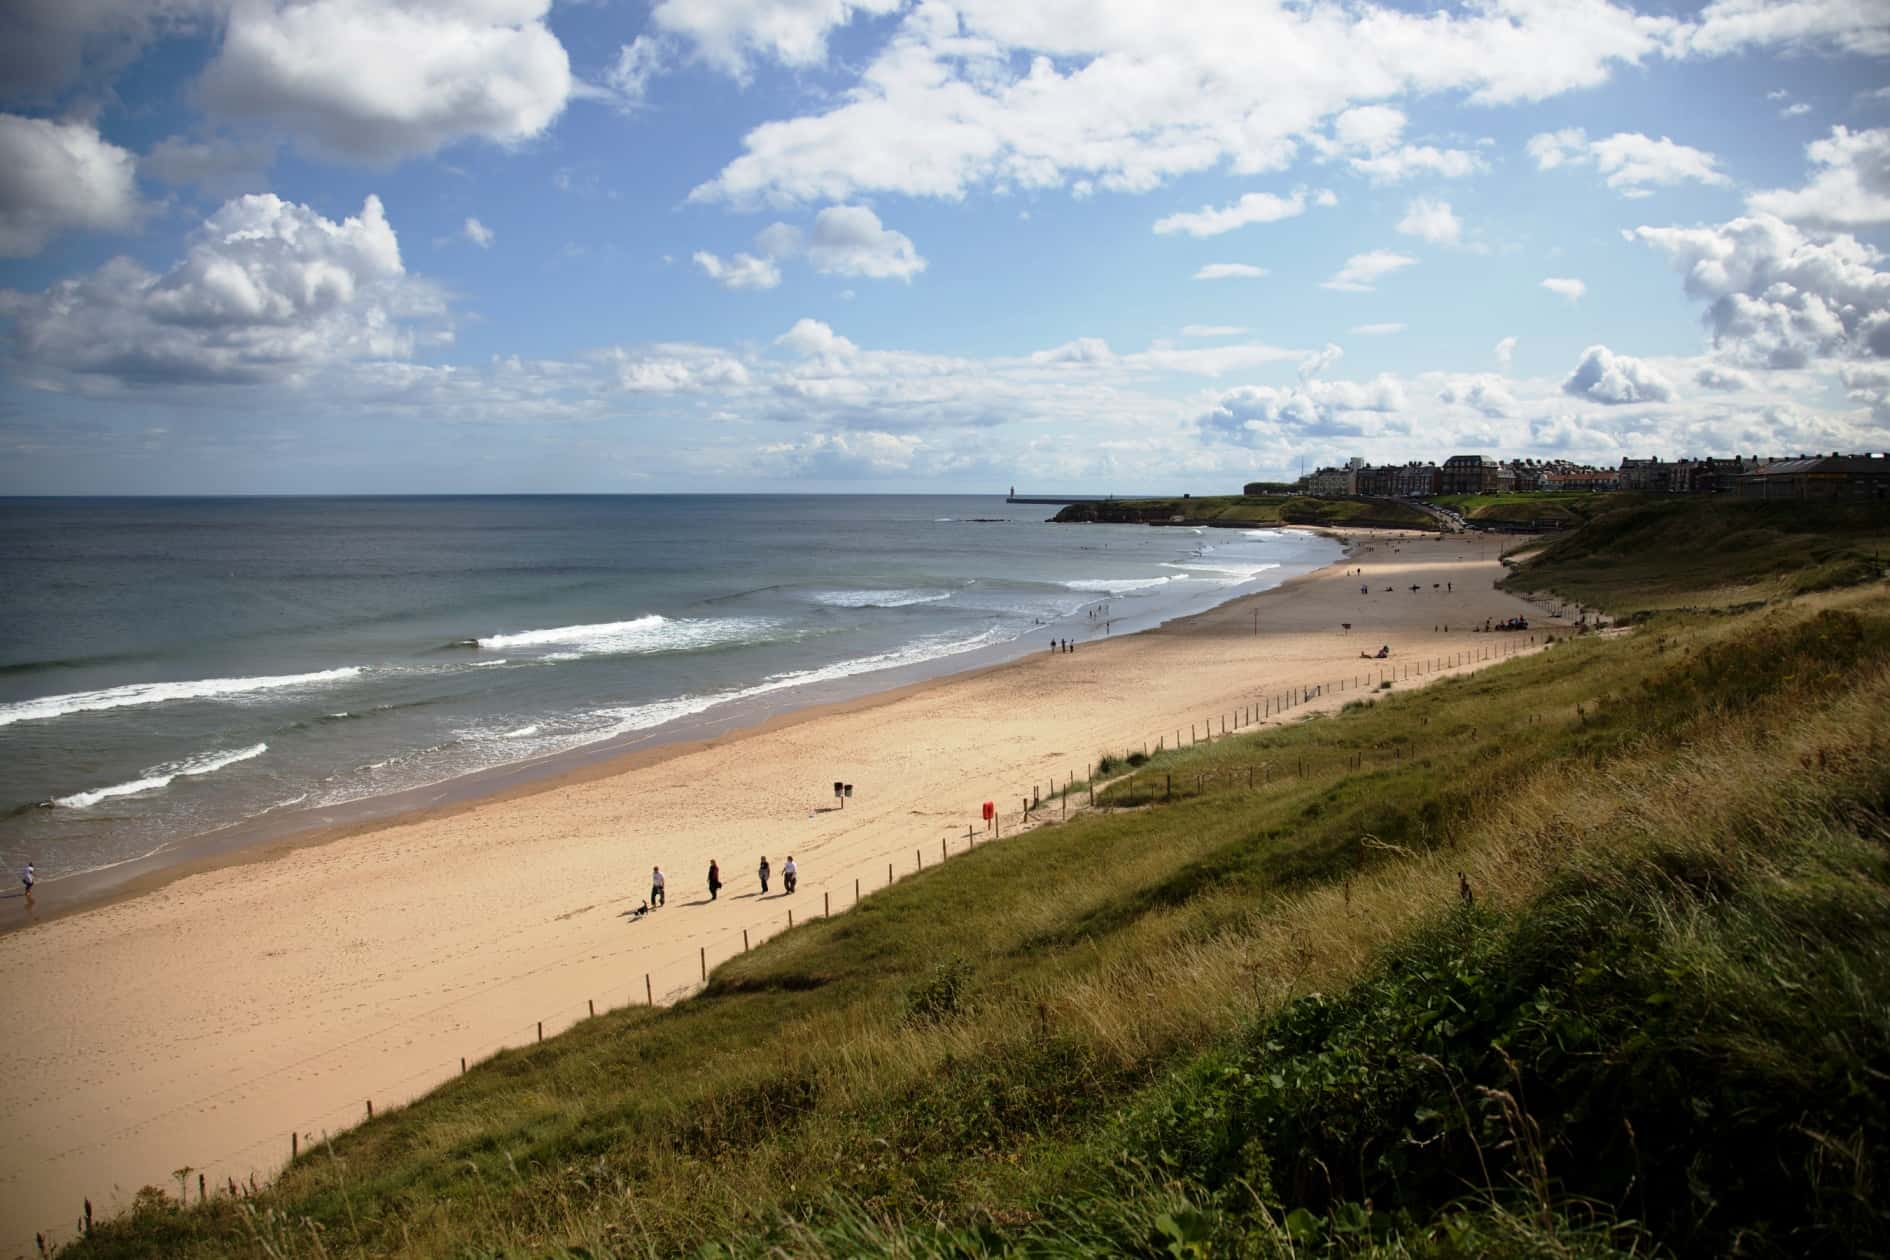 Photo: Longsands – one of the beaches recognised in the TripAdvisor awards.